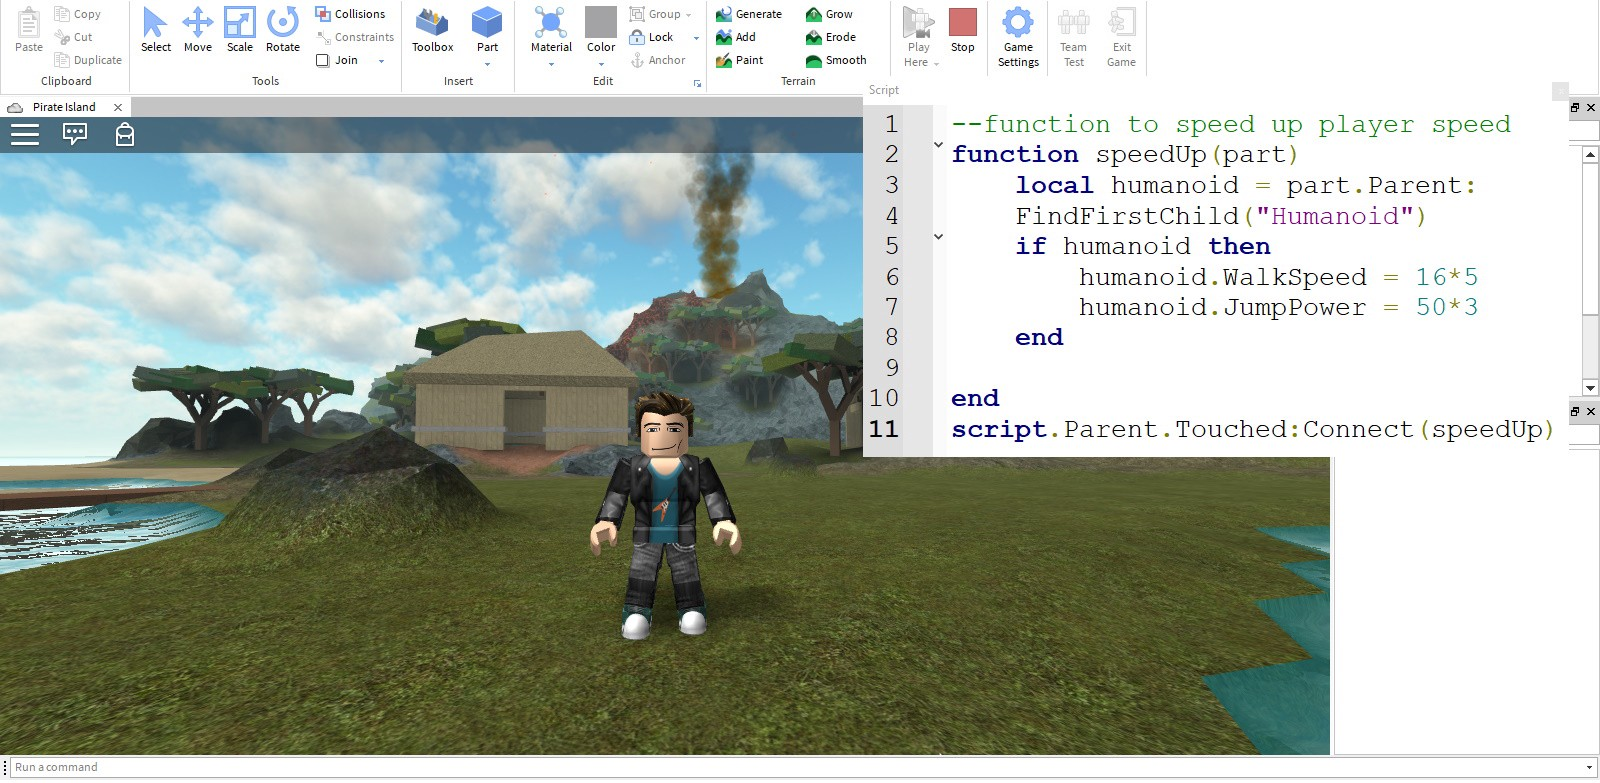 Roblox Kids Coding Top 9 Kids Programming Languages For 2020 Getting Started By Amarachi Emmanuela Azubuike Techducationpoint Medium